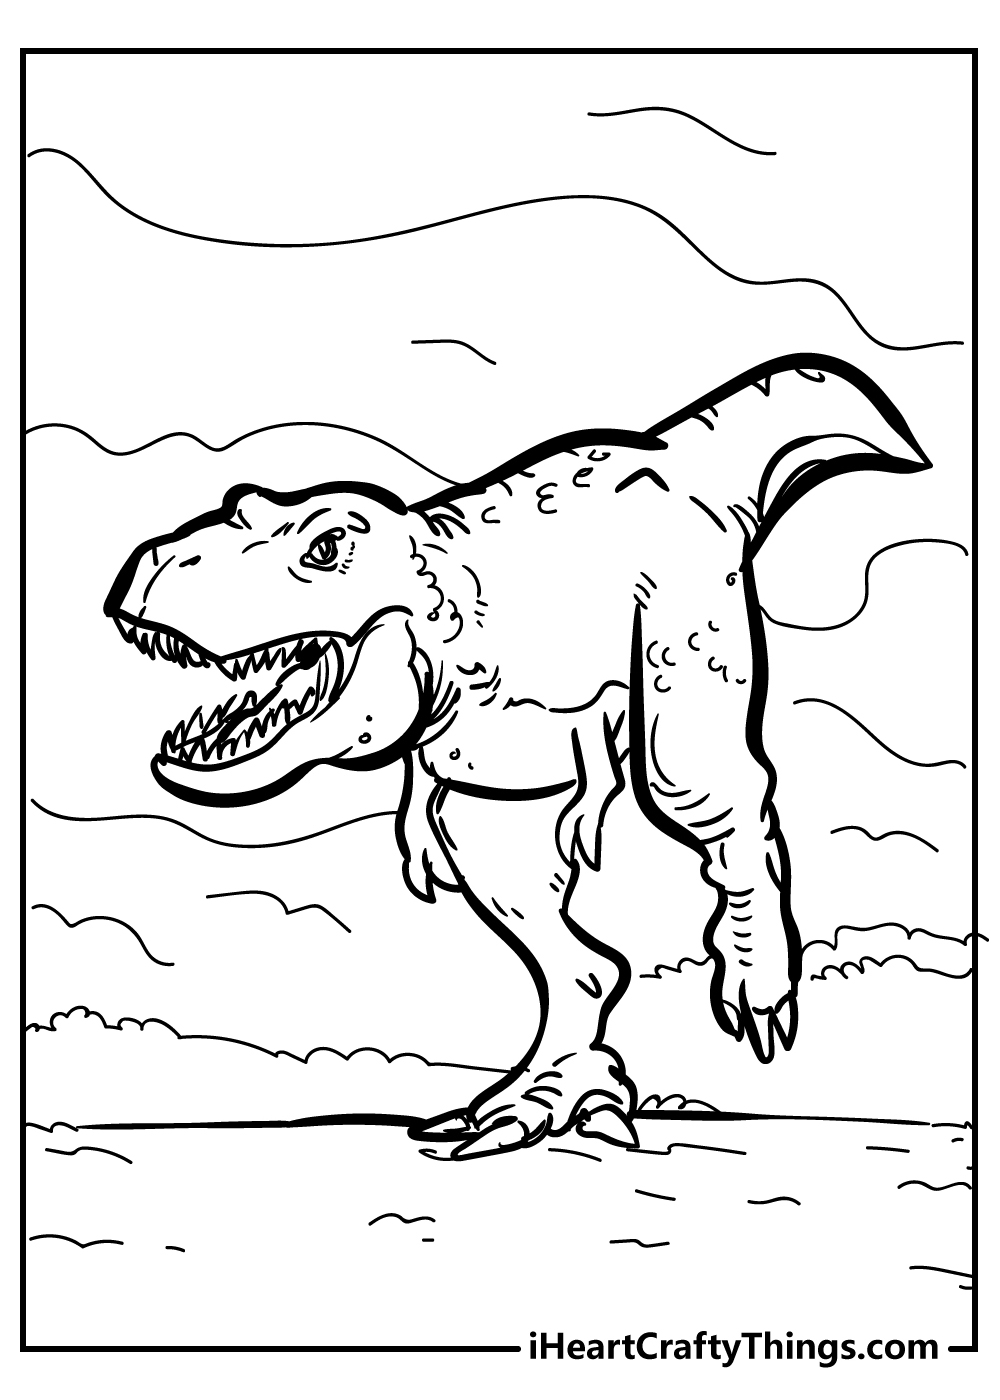 Jurassic world t-rex coloring pages for kids